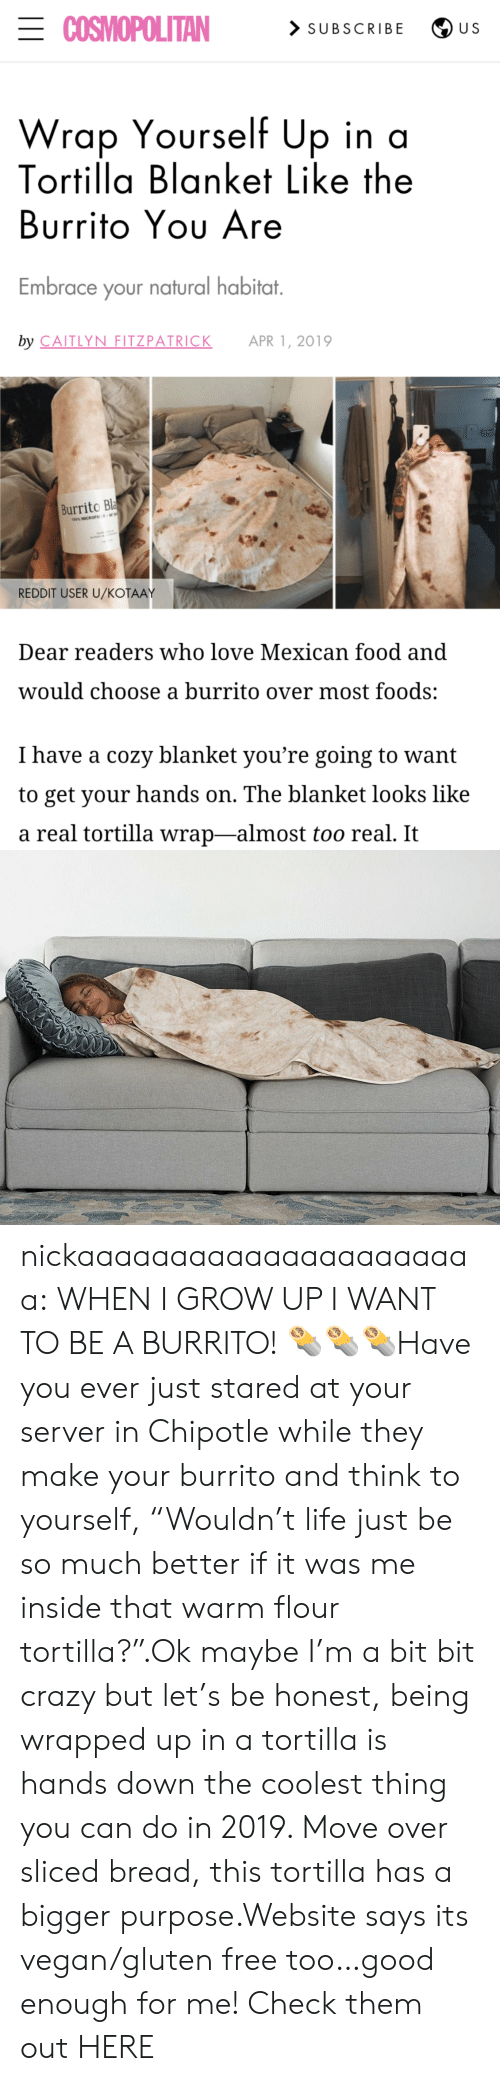 "Subscribe: ECOSMOPOLITAN  > SUBSCRIBE  U S  Wrap Yourself Up in a  Tortilla Blanket Like the  Burrito Yου Are  Embrace your natural habitat.  by CAITLYN FITZPATRICK  APR 1, 2019  Burrito Bla  100% MICROFE  REDDIT USER U/KOŤAAY  Dear readers who love Mexican food and  would choose a burrito over most foods:  I have a cozy blanket you're going to want  to get your hands on. The blanket looks like  a real tortilla wrap-almost too real. It nickaaaaaaaaaaaaaaaaaaaaaa:  WHEN I GROW UP I WANT TO BE A BURRITO! 🌯🌯🌯Have you ever just stared at your server in Chipotle while they make your burrito and think to yourself, ""Wouldn't life just be so much better if it was me inside that warm flour tortilla?"".Ok maybe I'm a bit bit crazy but let's be honest, being wrapped up in a tortilla is hands down the coolest thing you can do in 2019. Move over sliced bread, this tortilla has a bigger purpose.Website says its vegan/gluten free too…good enough for me! Check them out HERE"